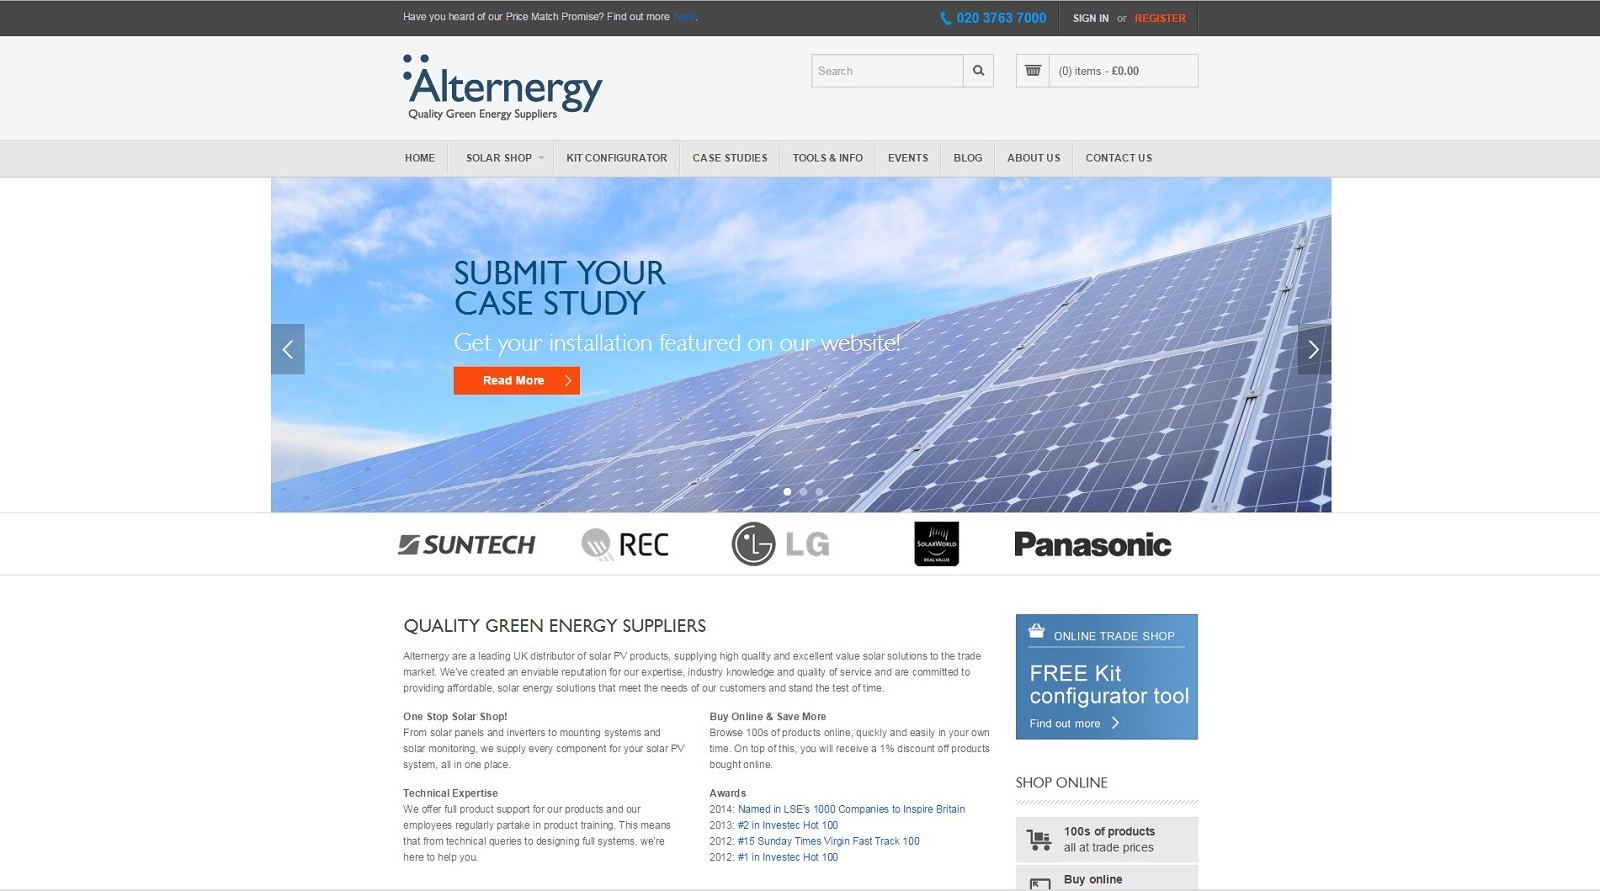 Alternergy homepage design